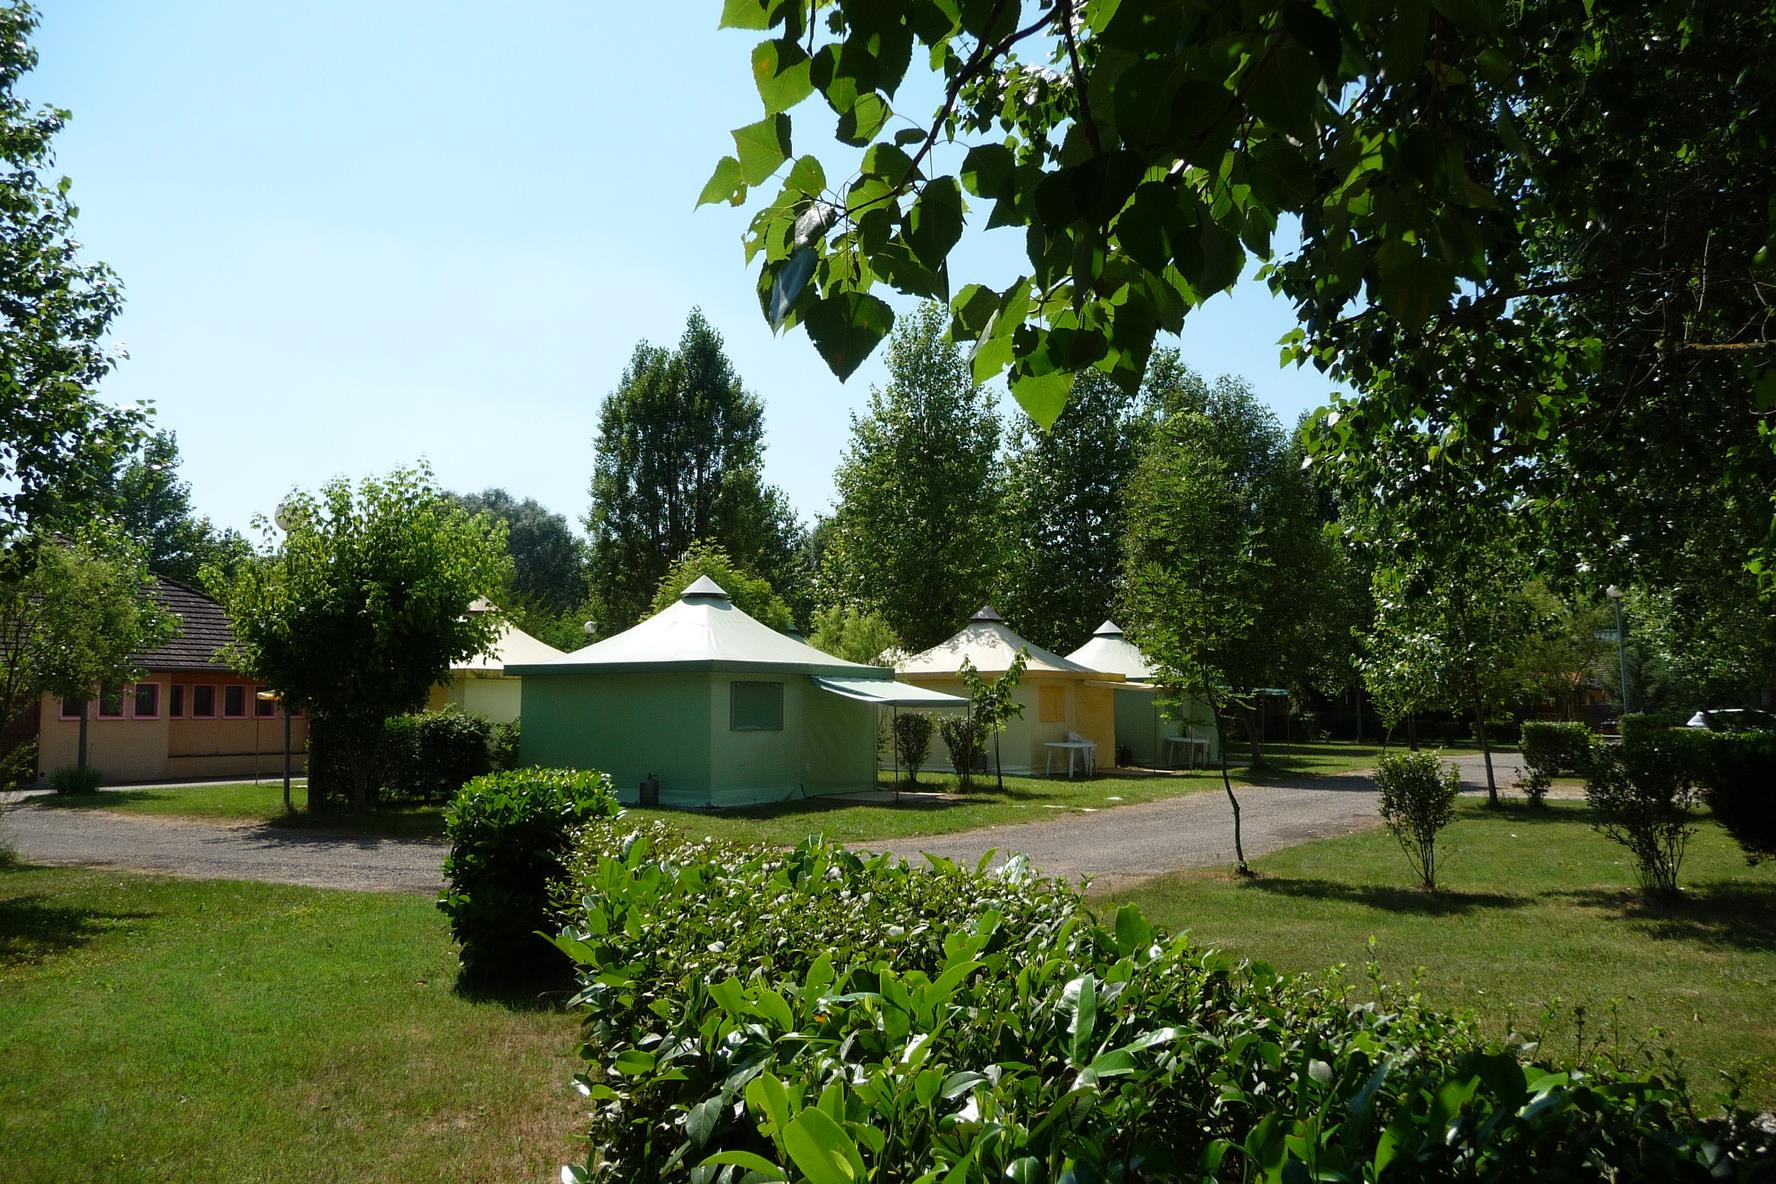 Accommodation - Canvas Bungalow Nautic 20M² Without Toilet Blocks - Camping Ile de la Comtesse